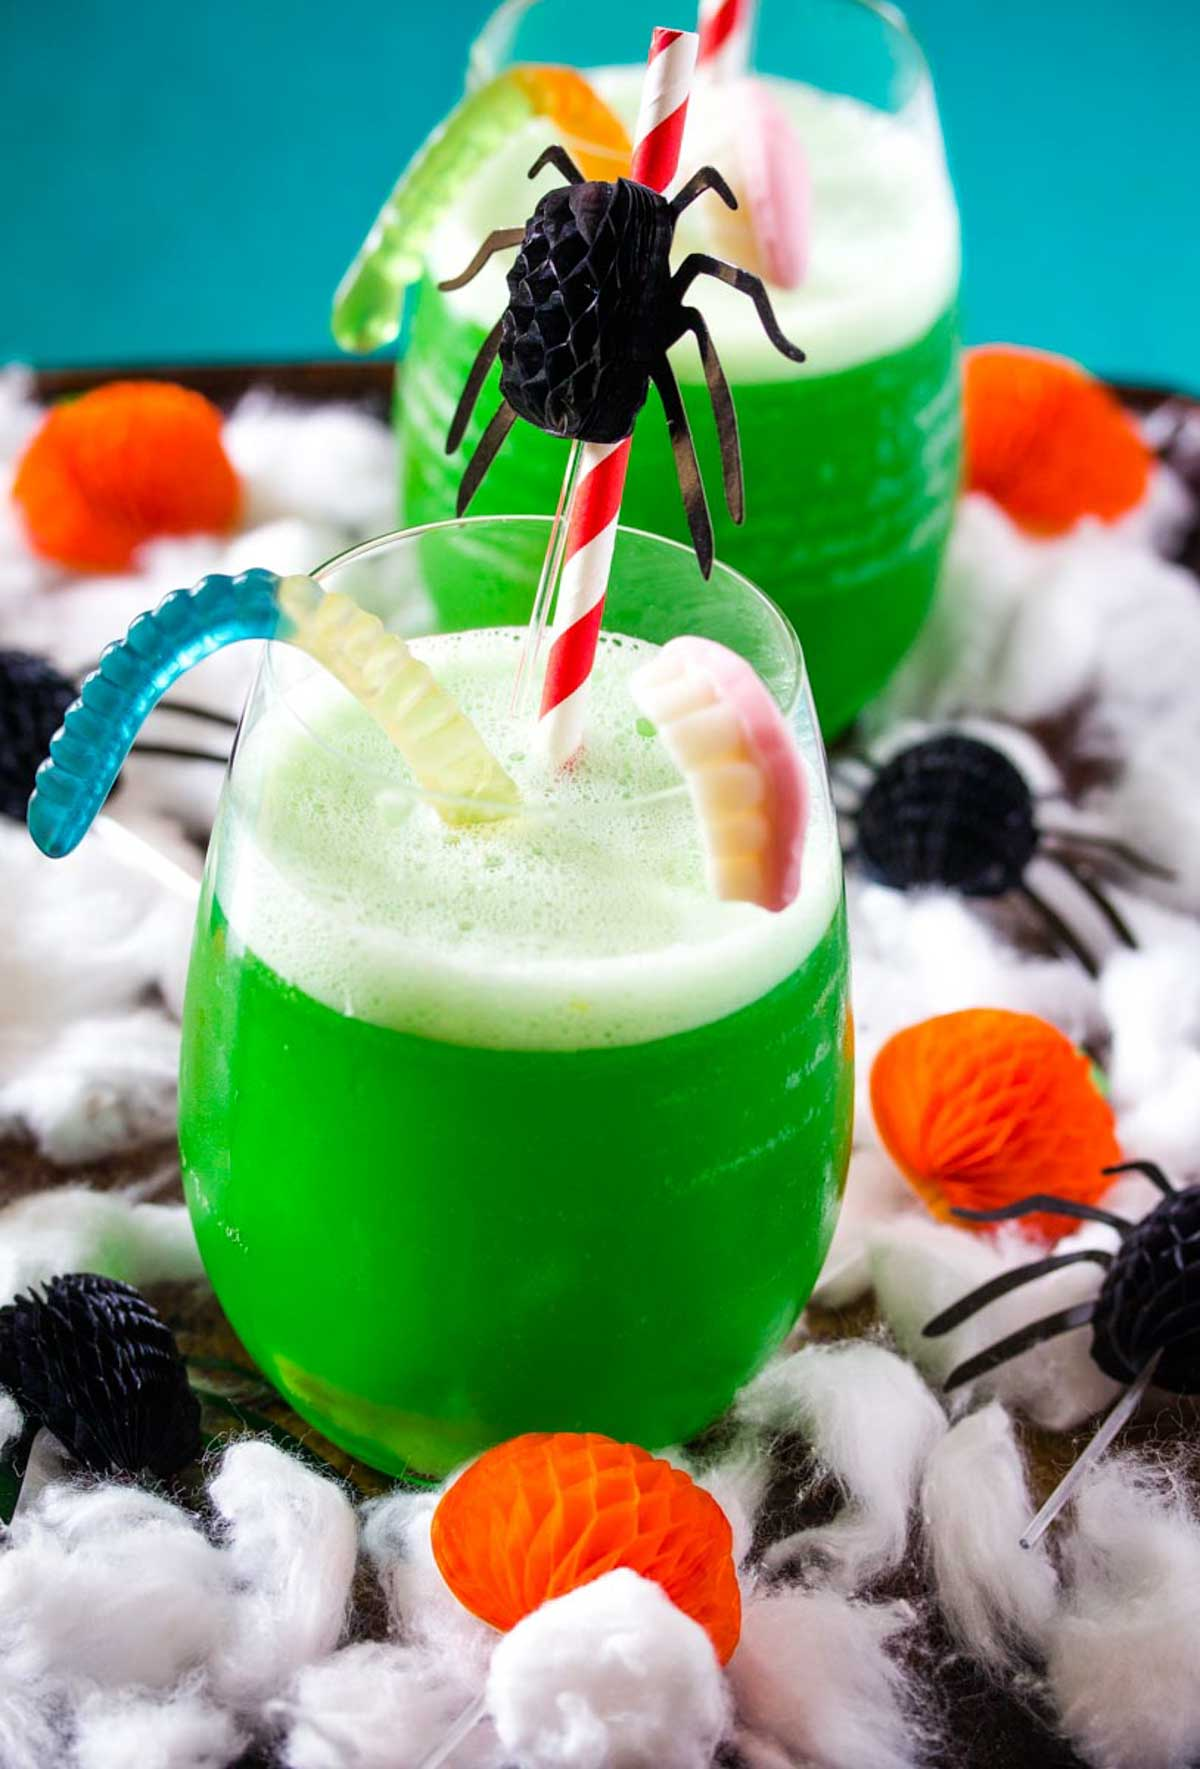 Polyjuice Potion in a round glass decorated with gummy worms and Halloween decorations.